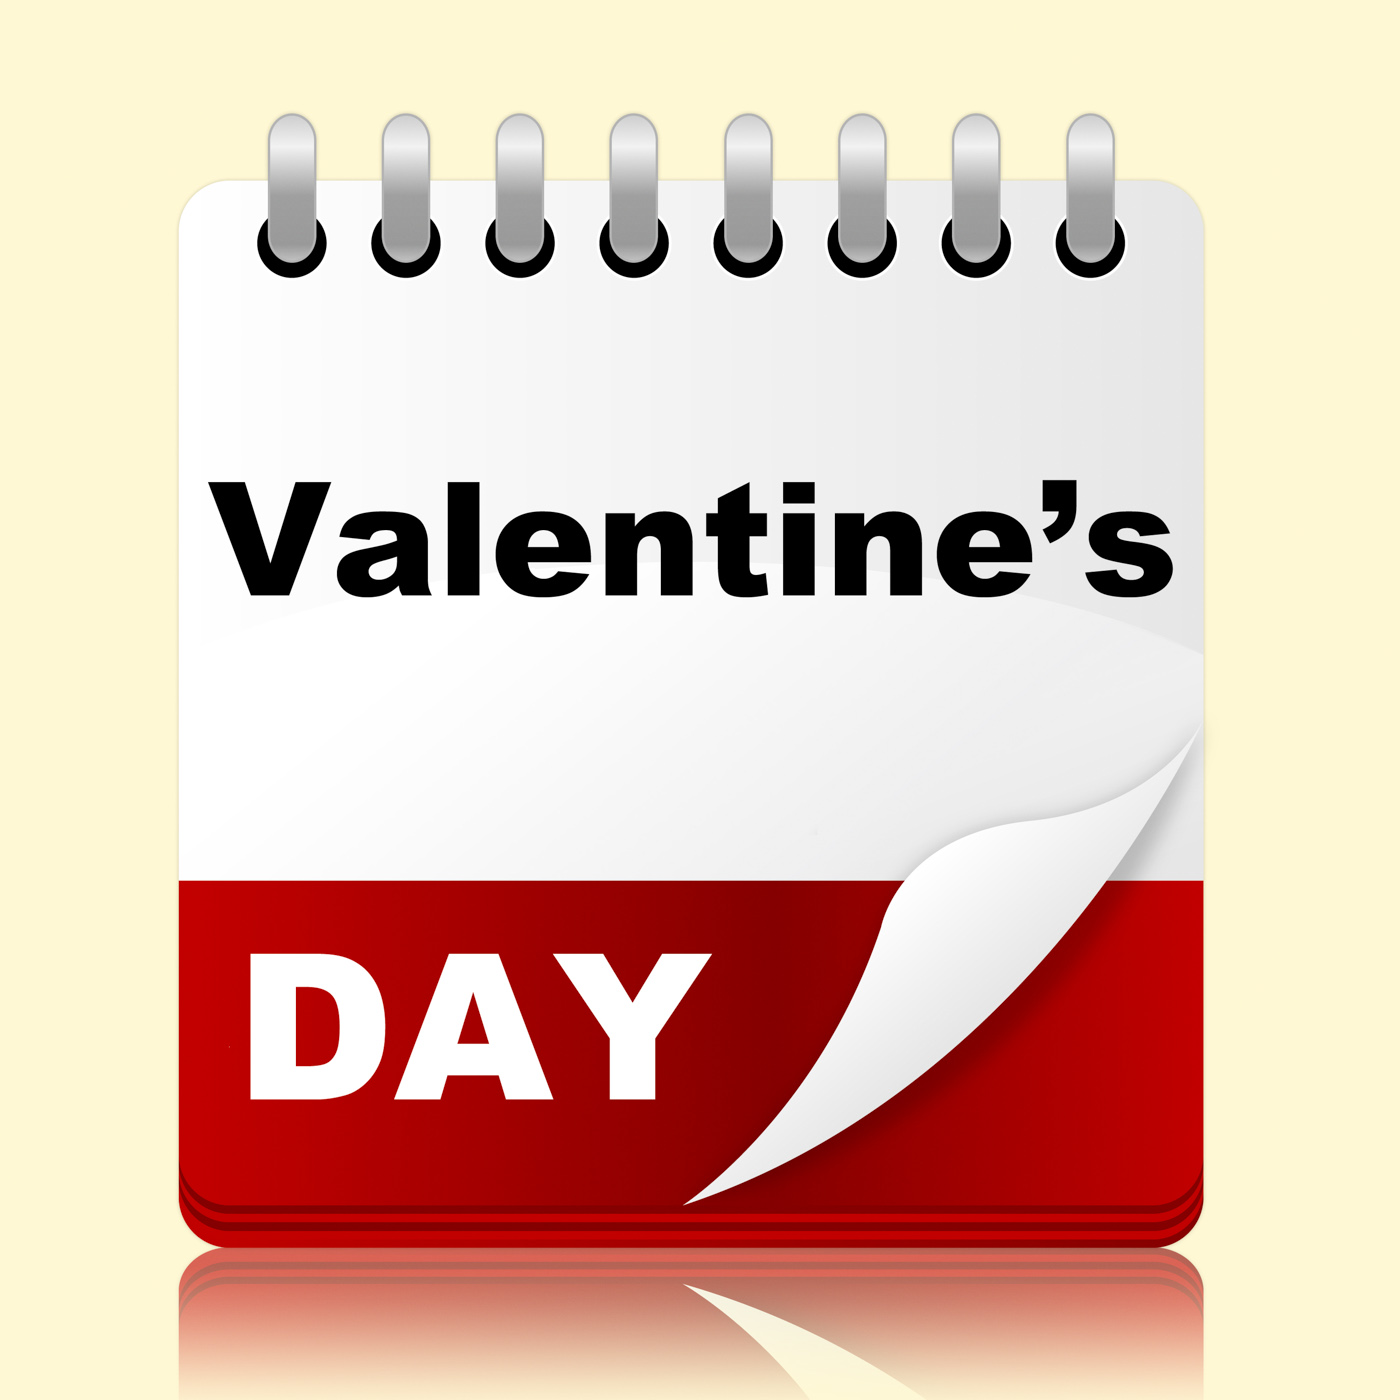 Valentines day indicates planning month and affection photo